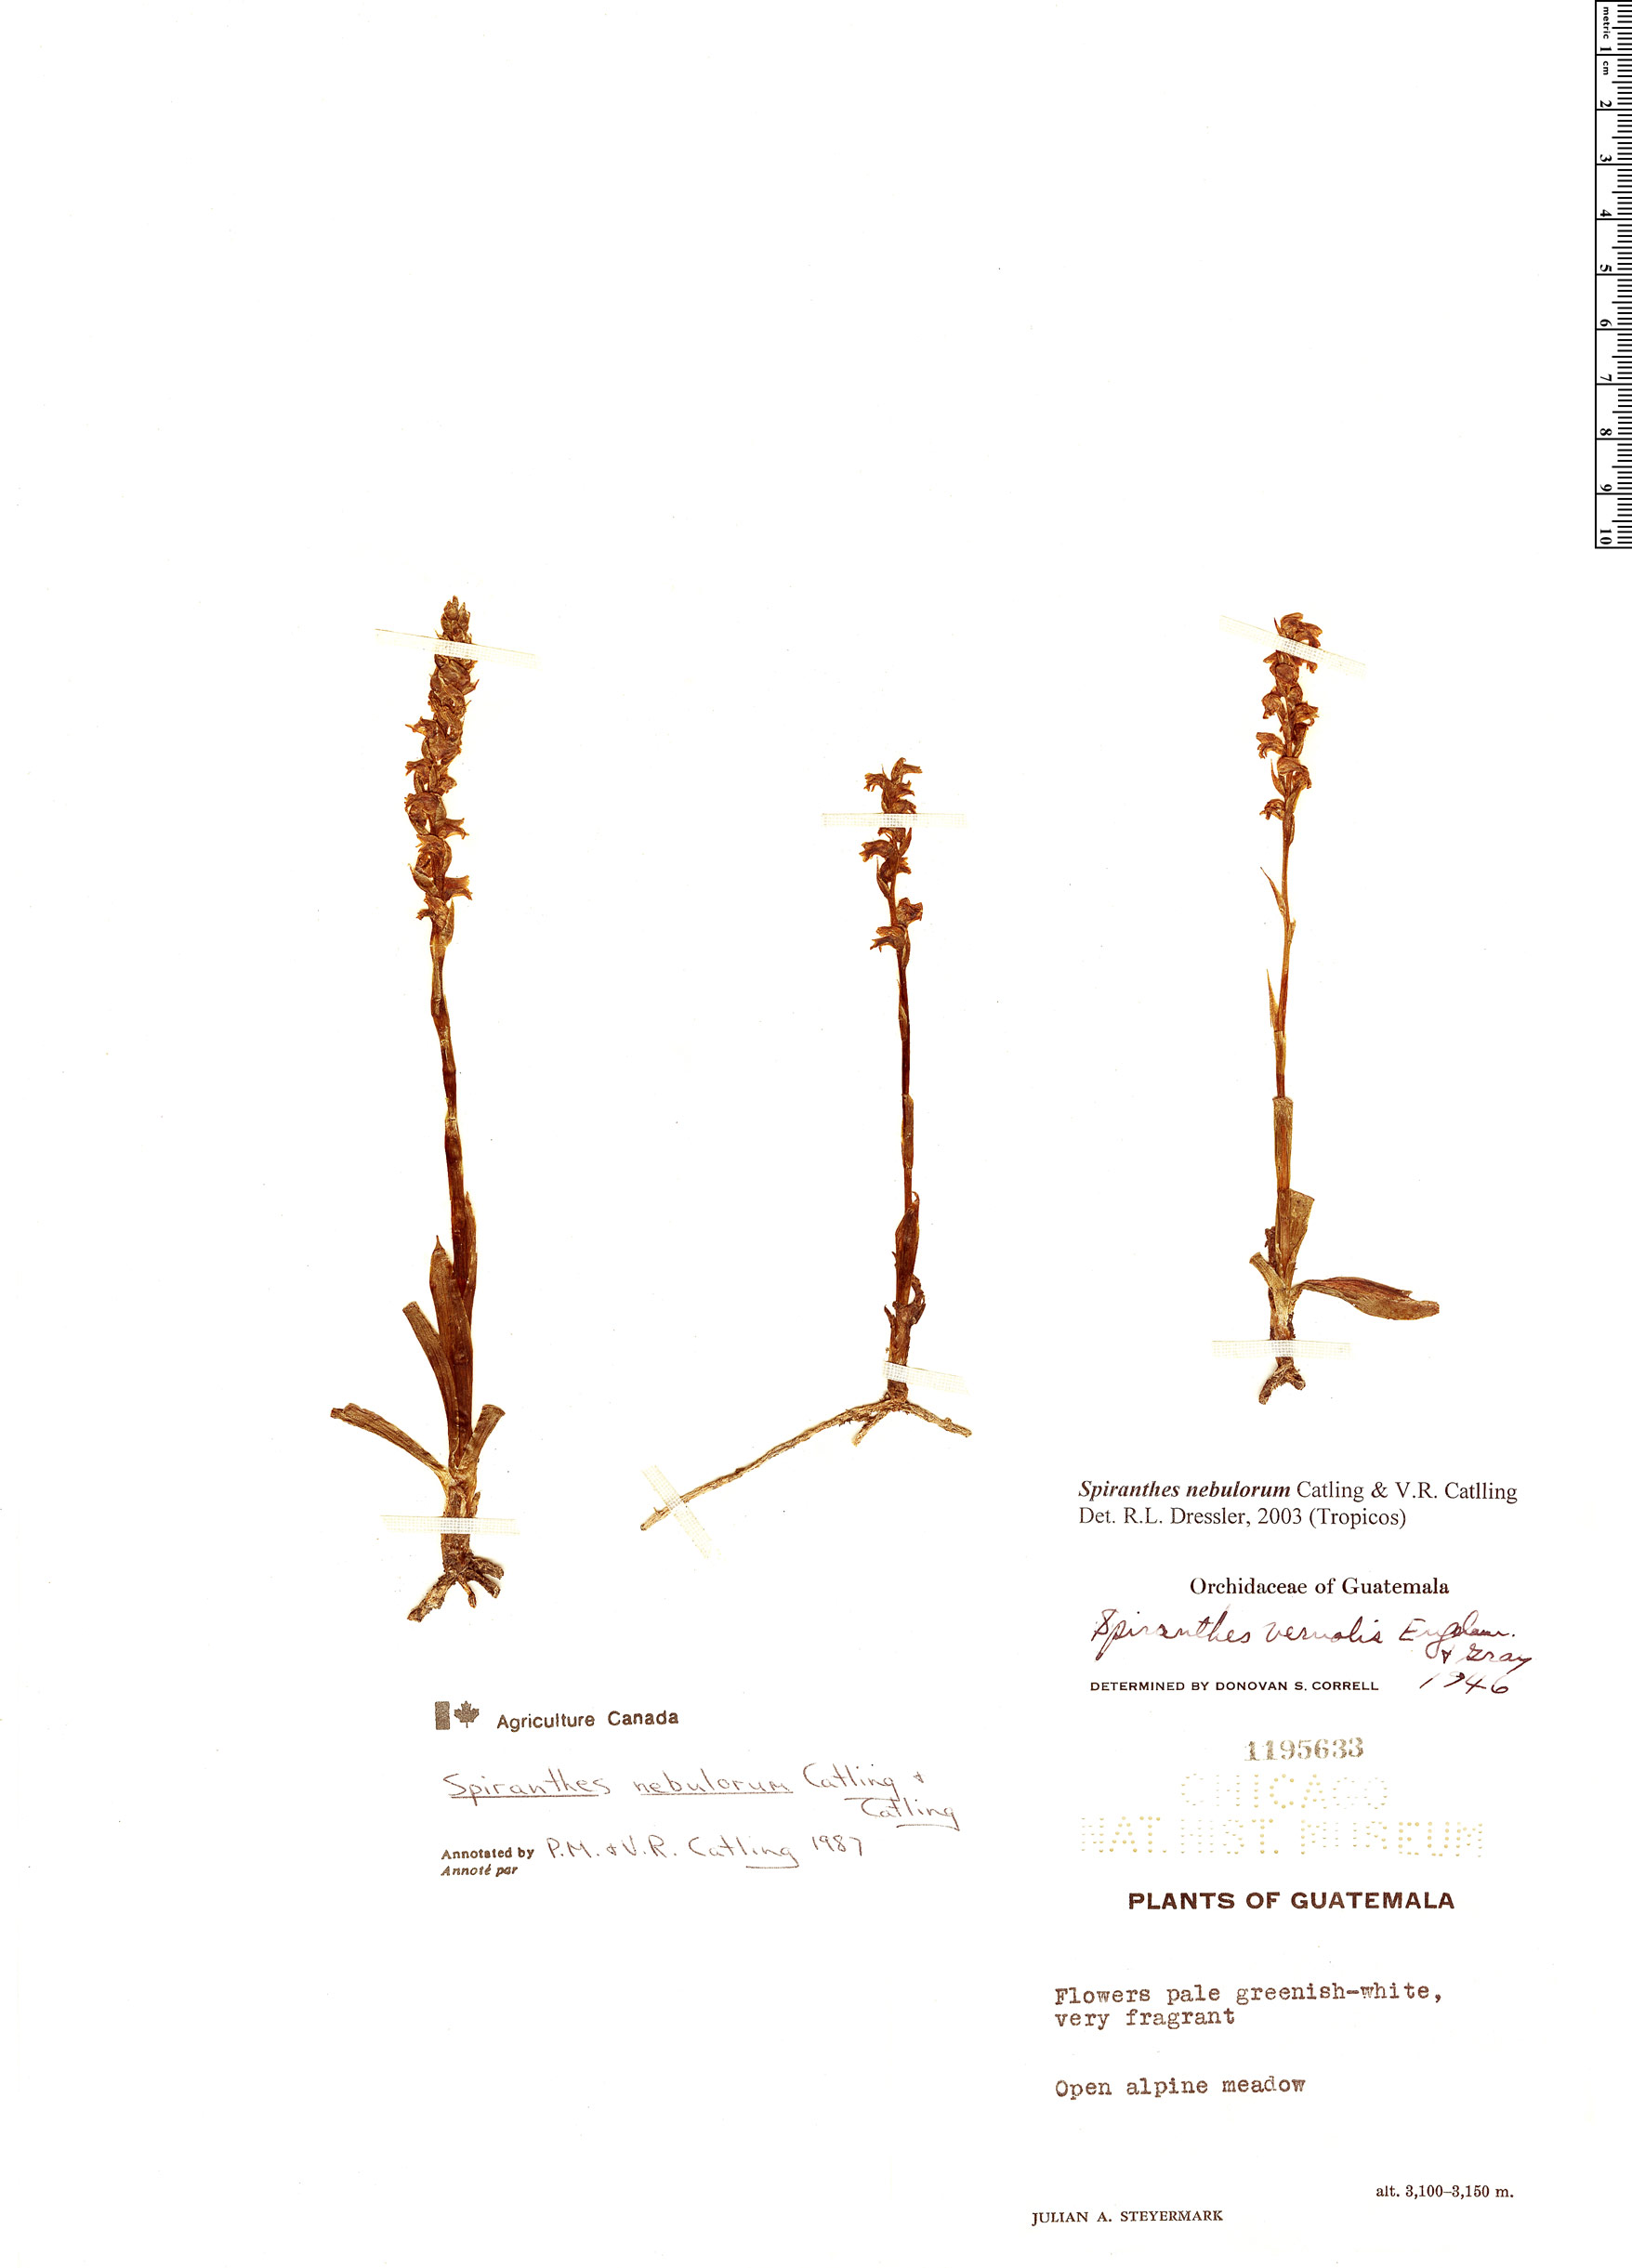 Specimen: Spiranthes nebulorum